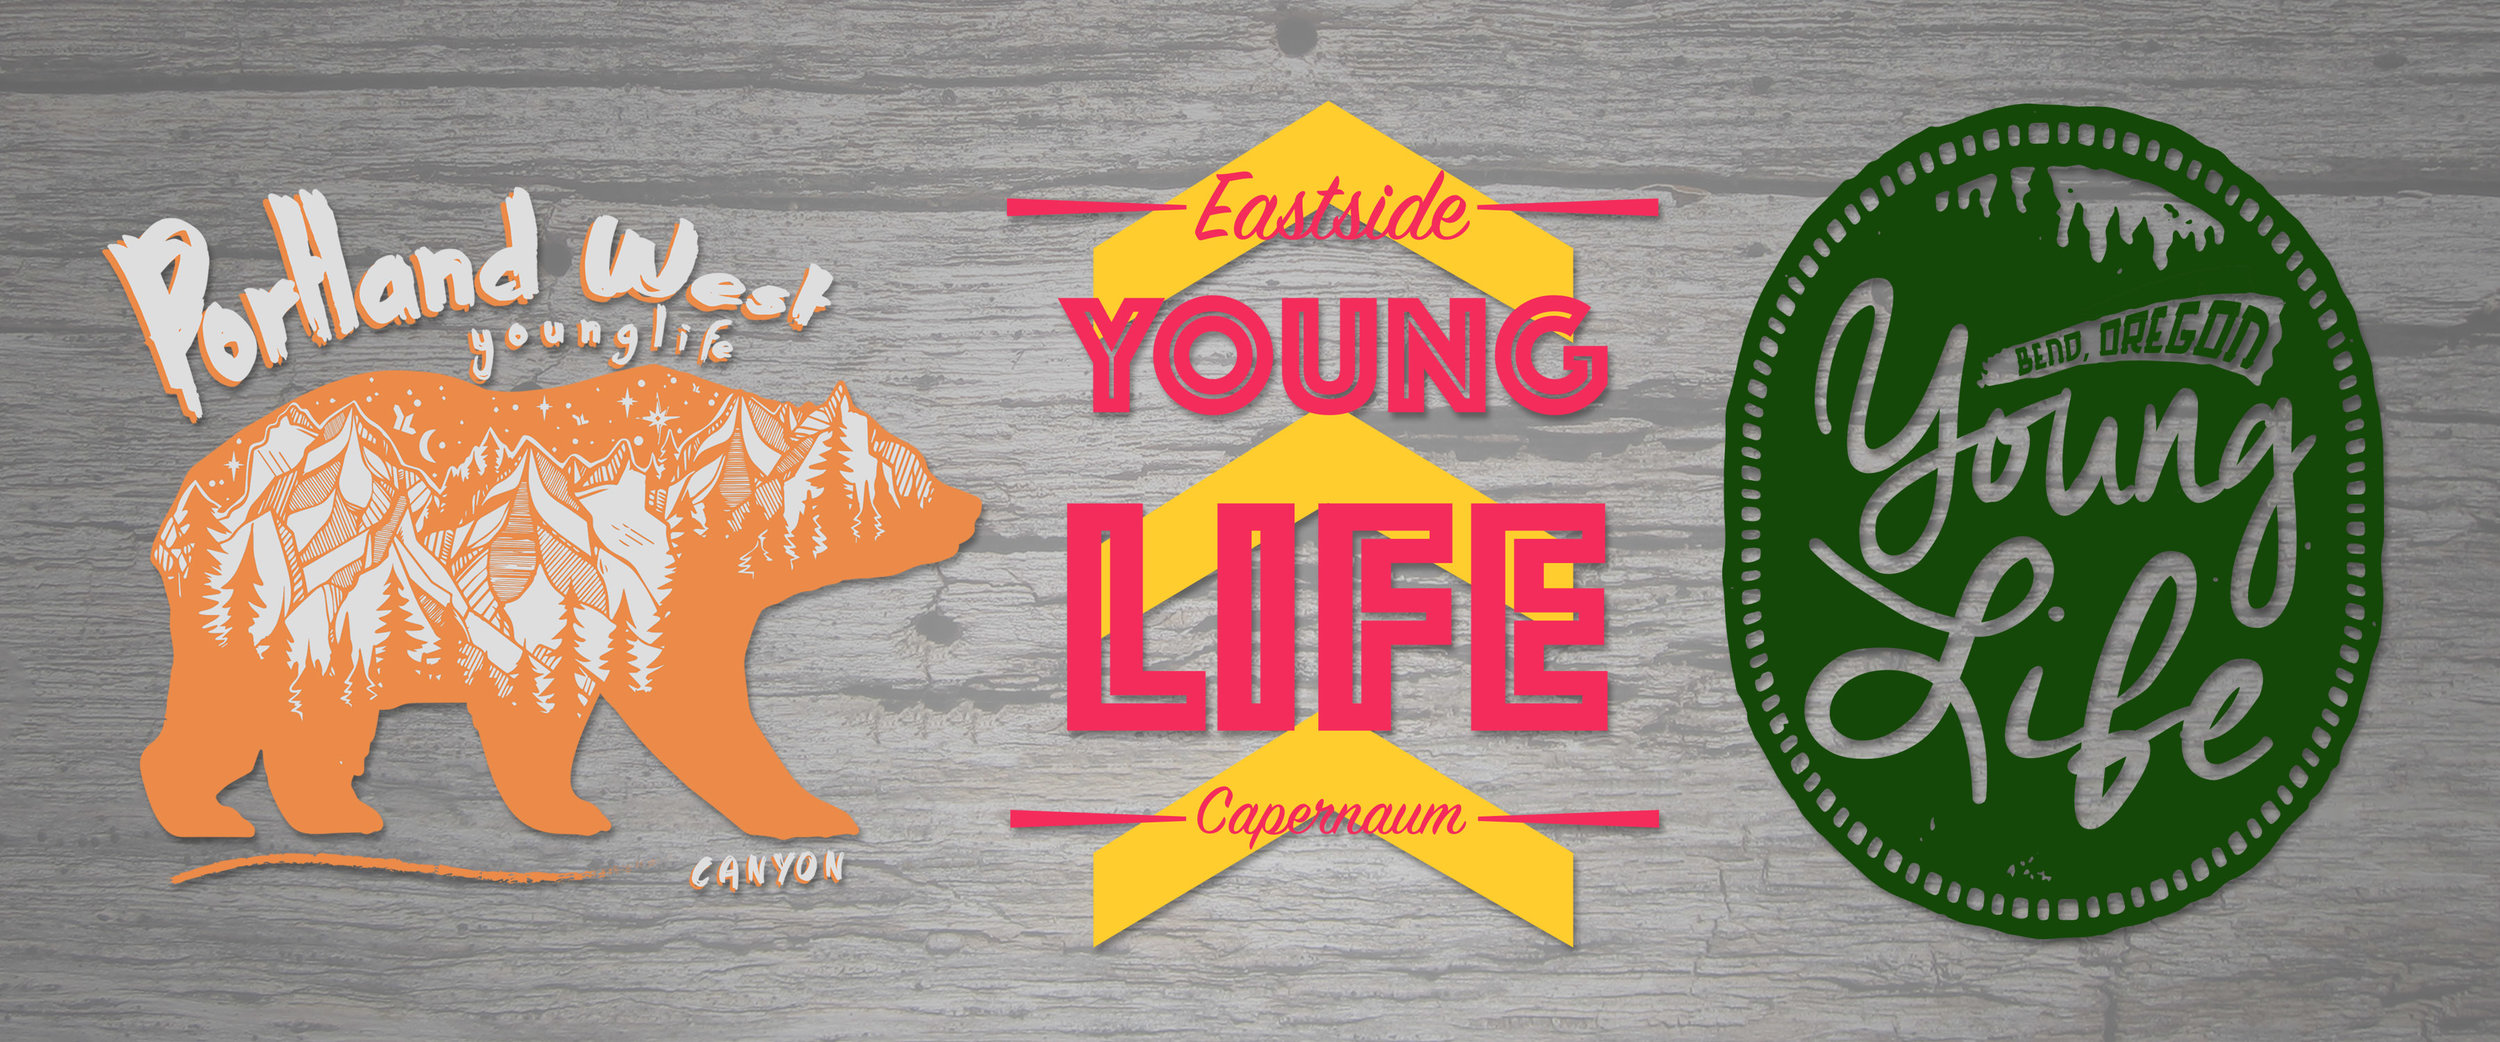 Wears My Shirt - Custom Products Anything - Younglife Artwork 1.jpg